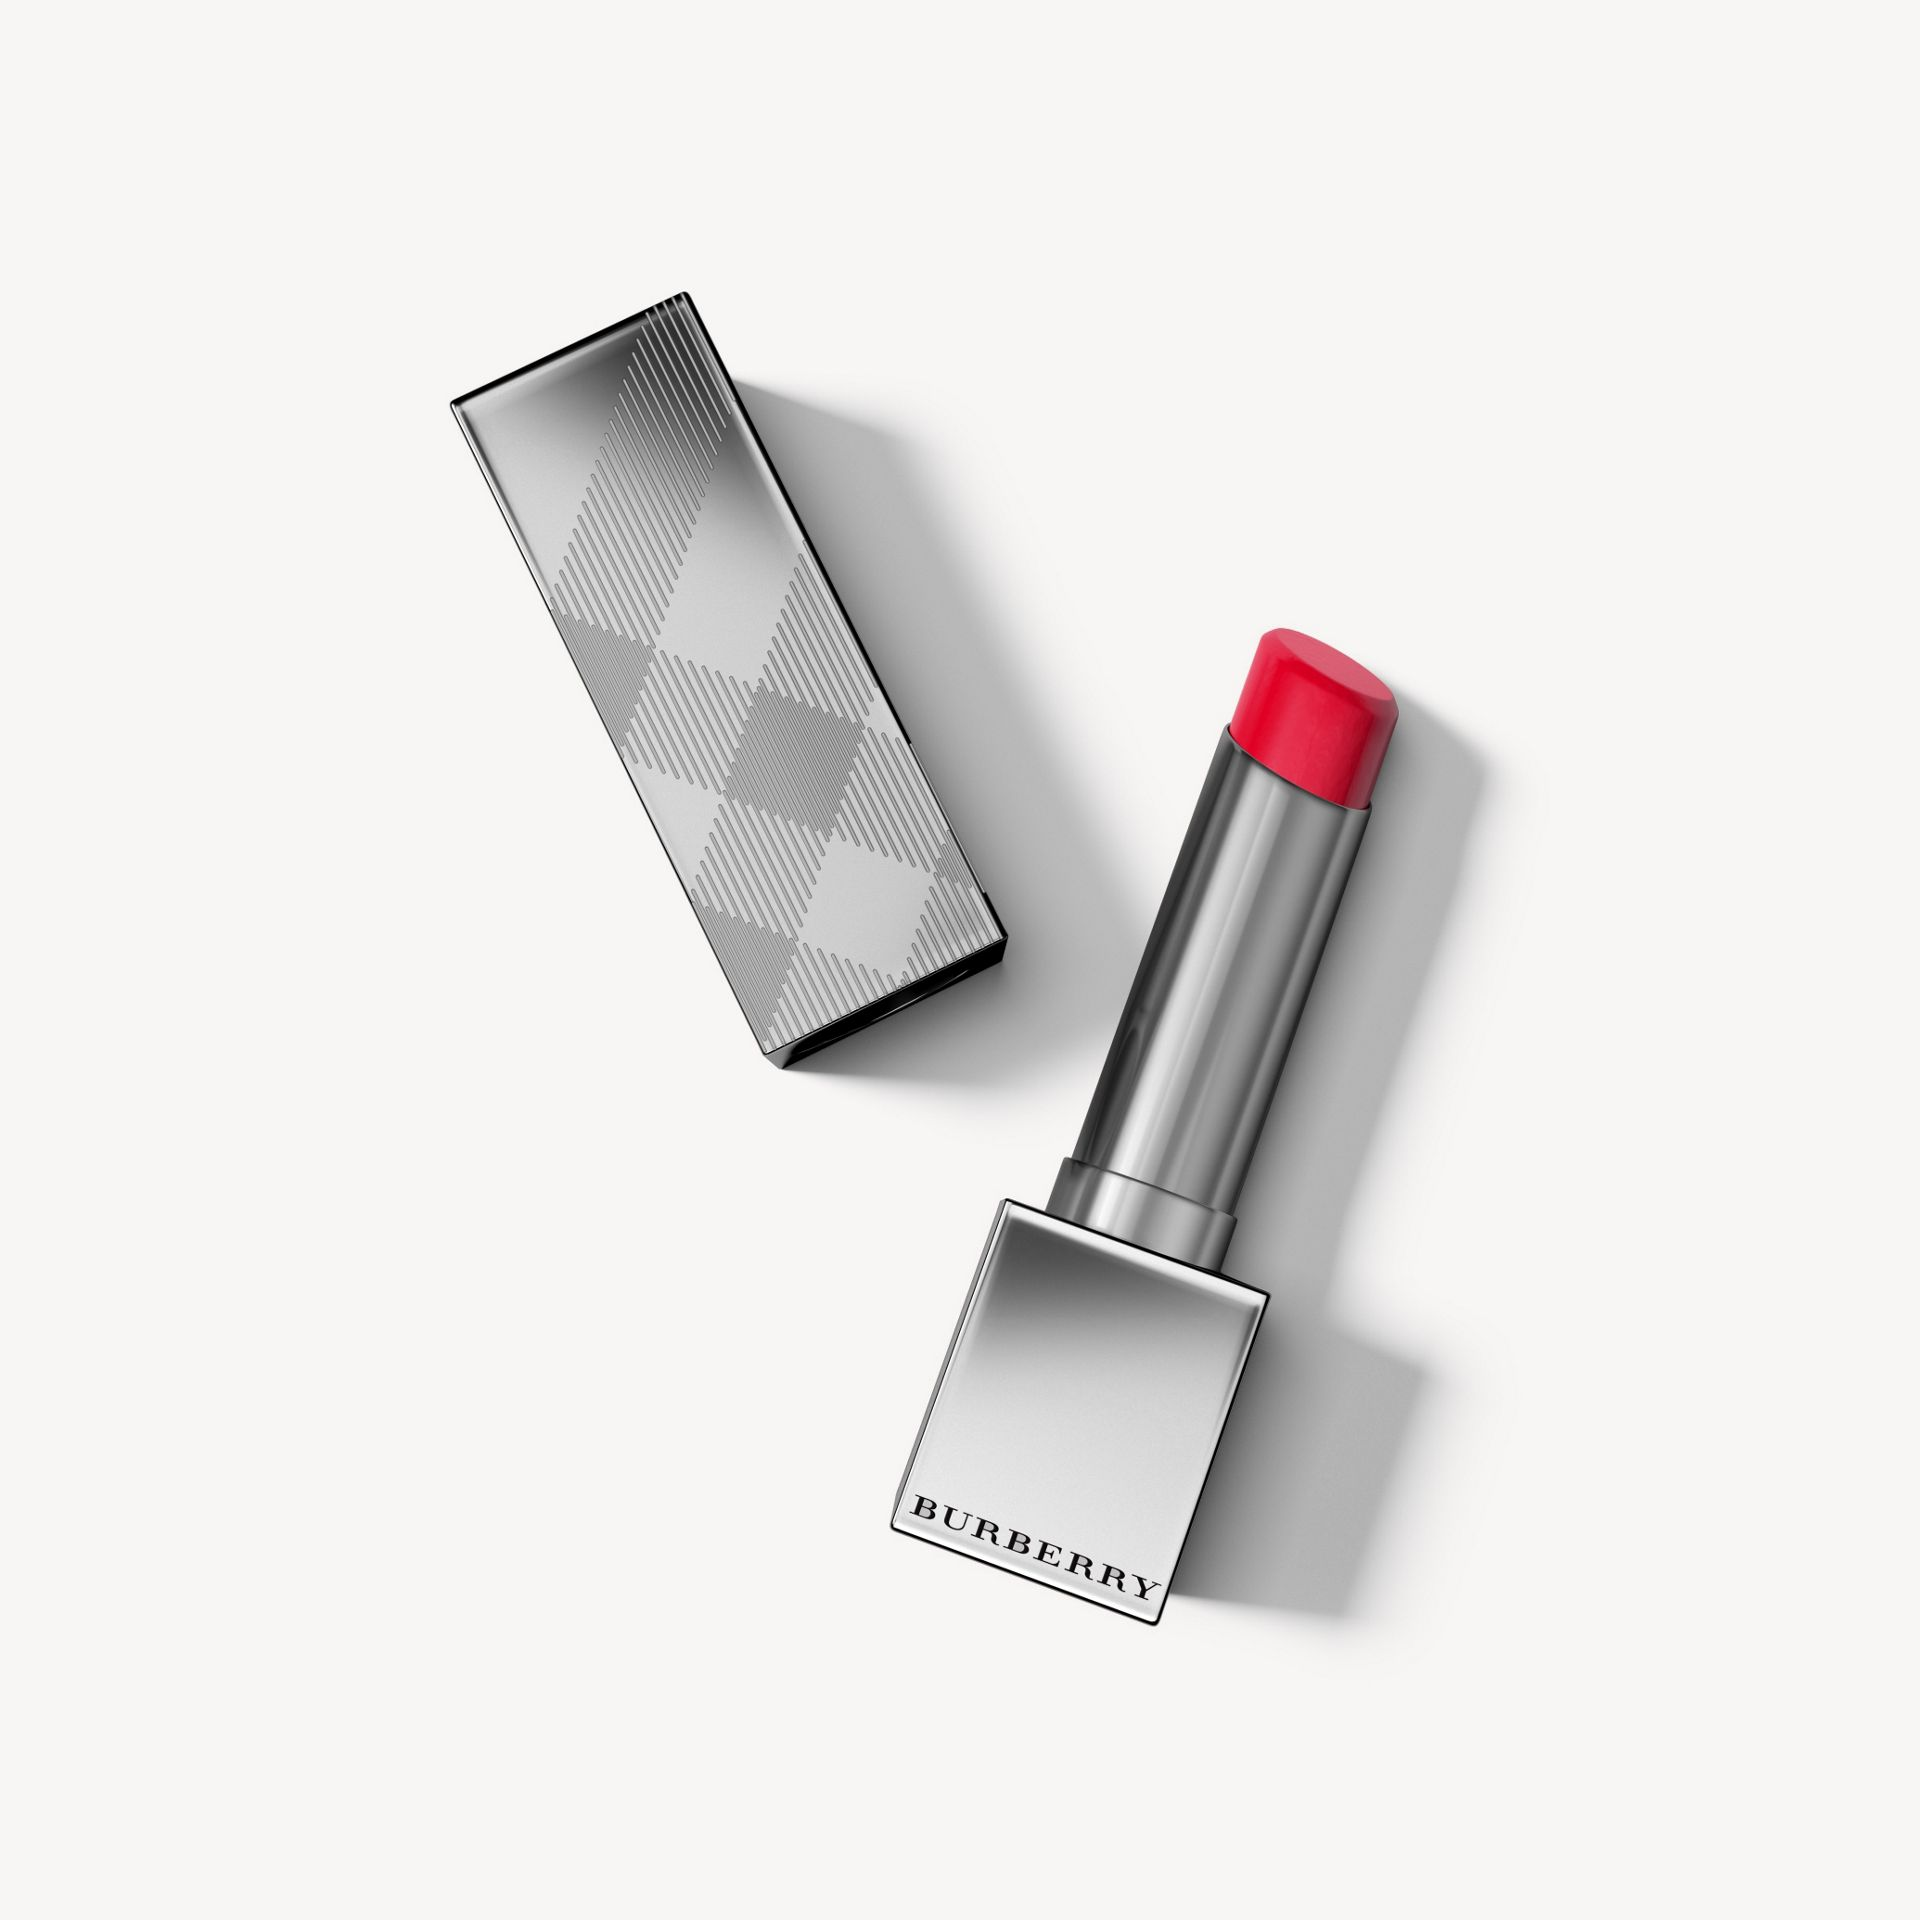 Burberry Kisses Sheer - Poppy Red No.309 - immagine della galleria 1